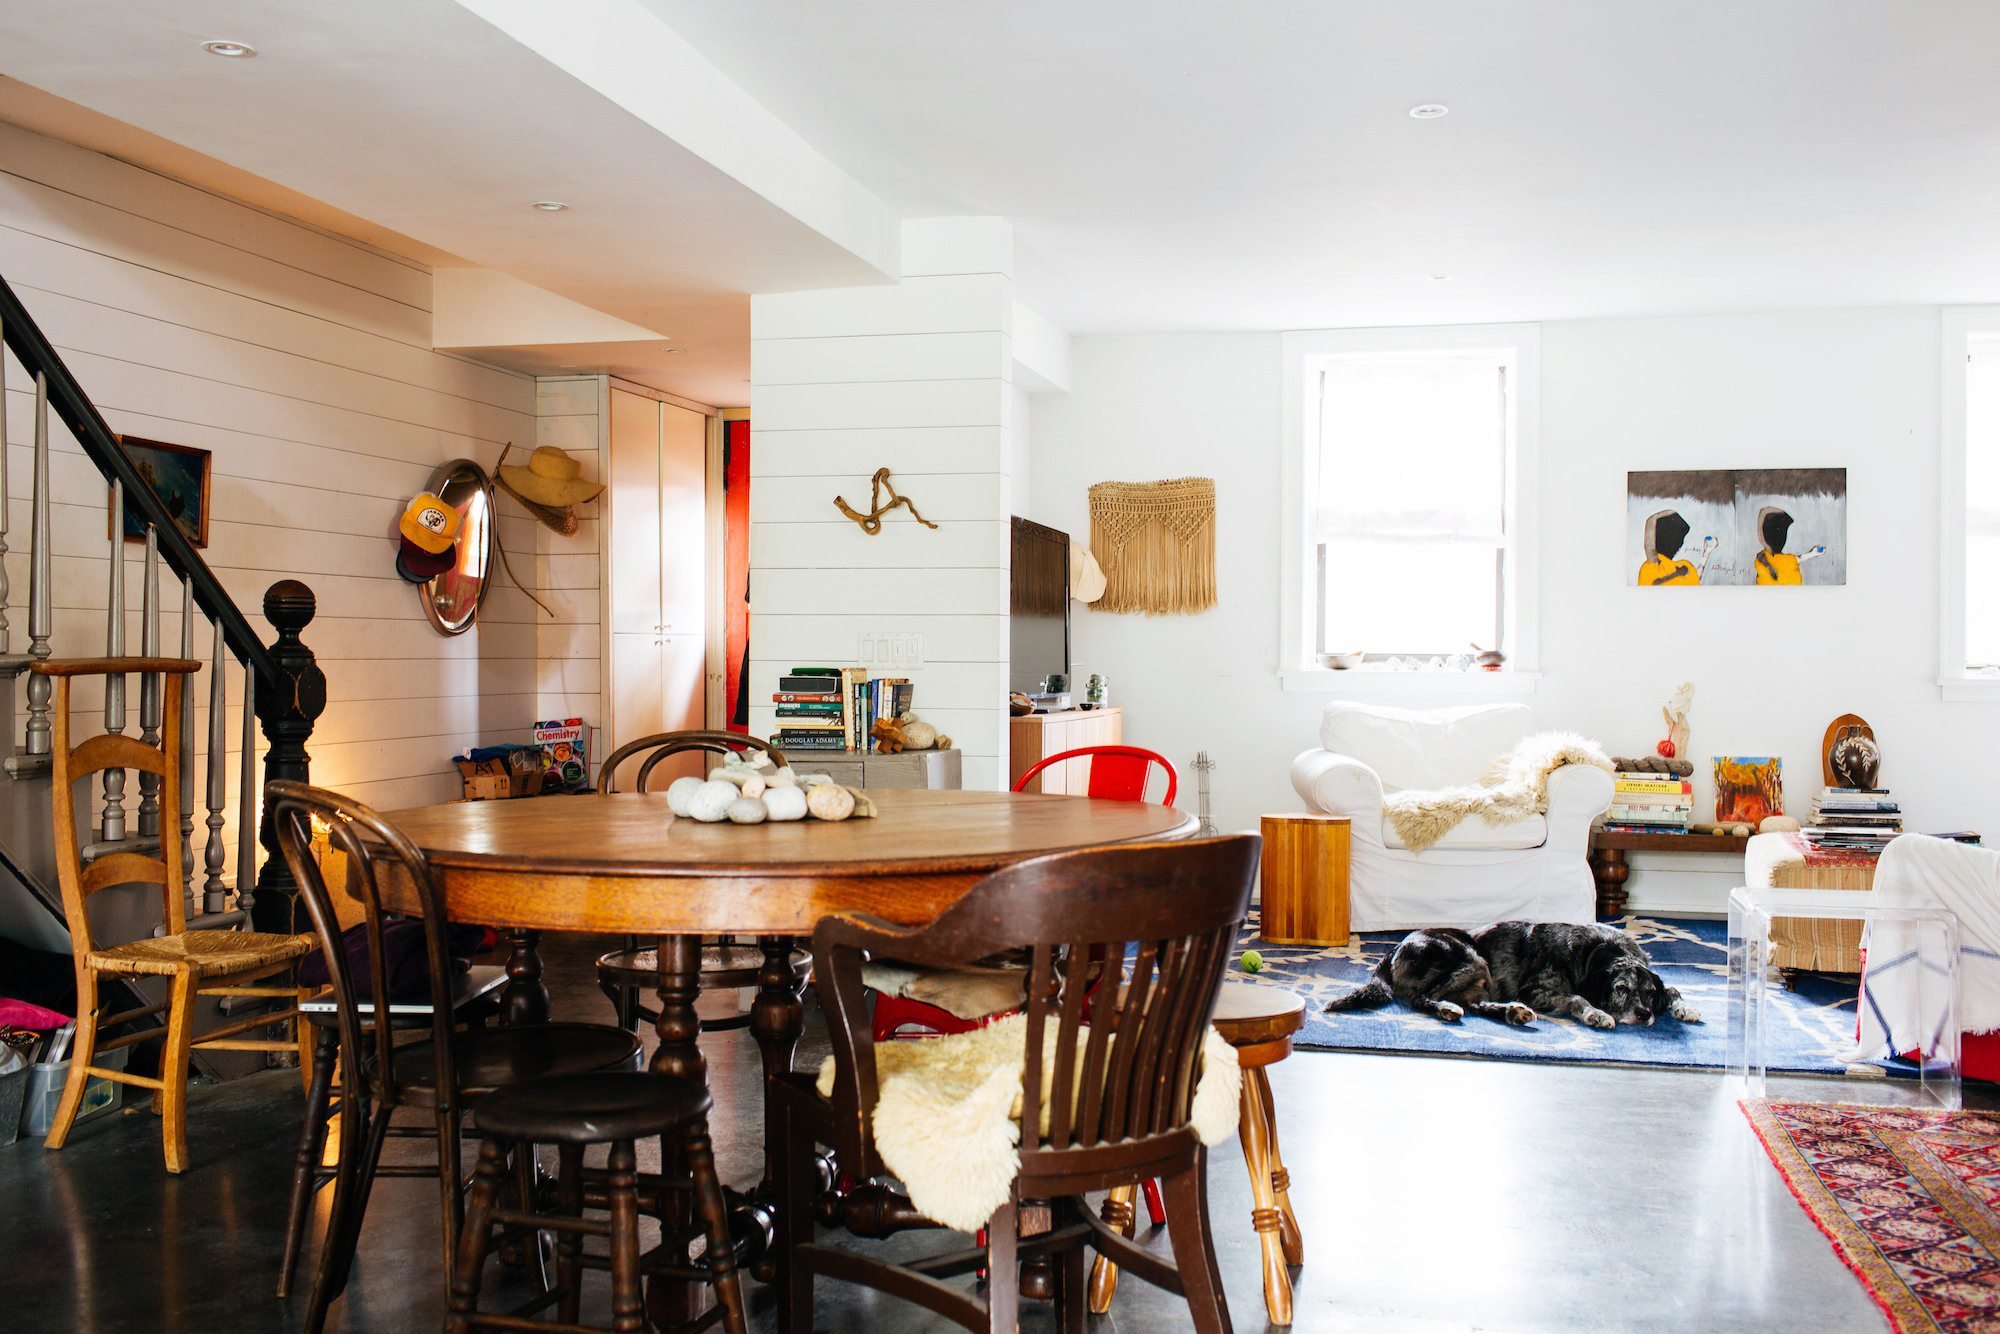 mysqft-amy-helfand-kitchen-edited3